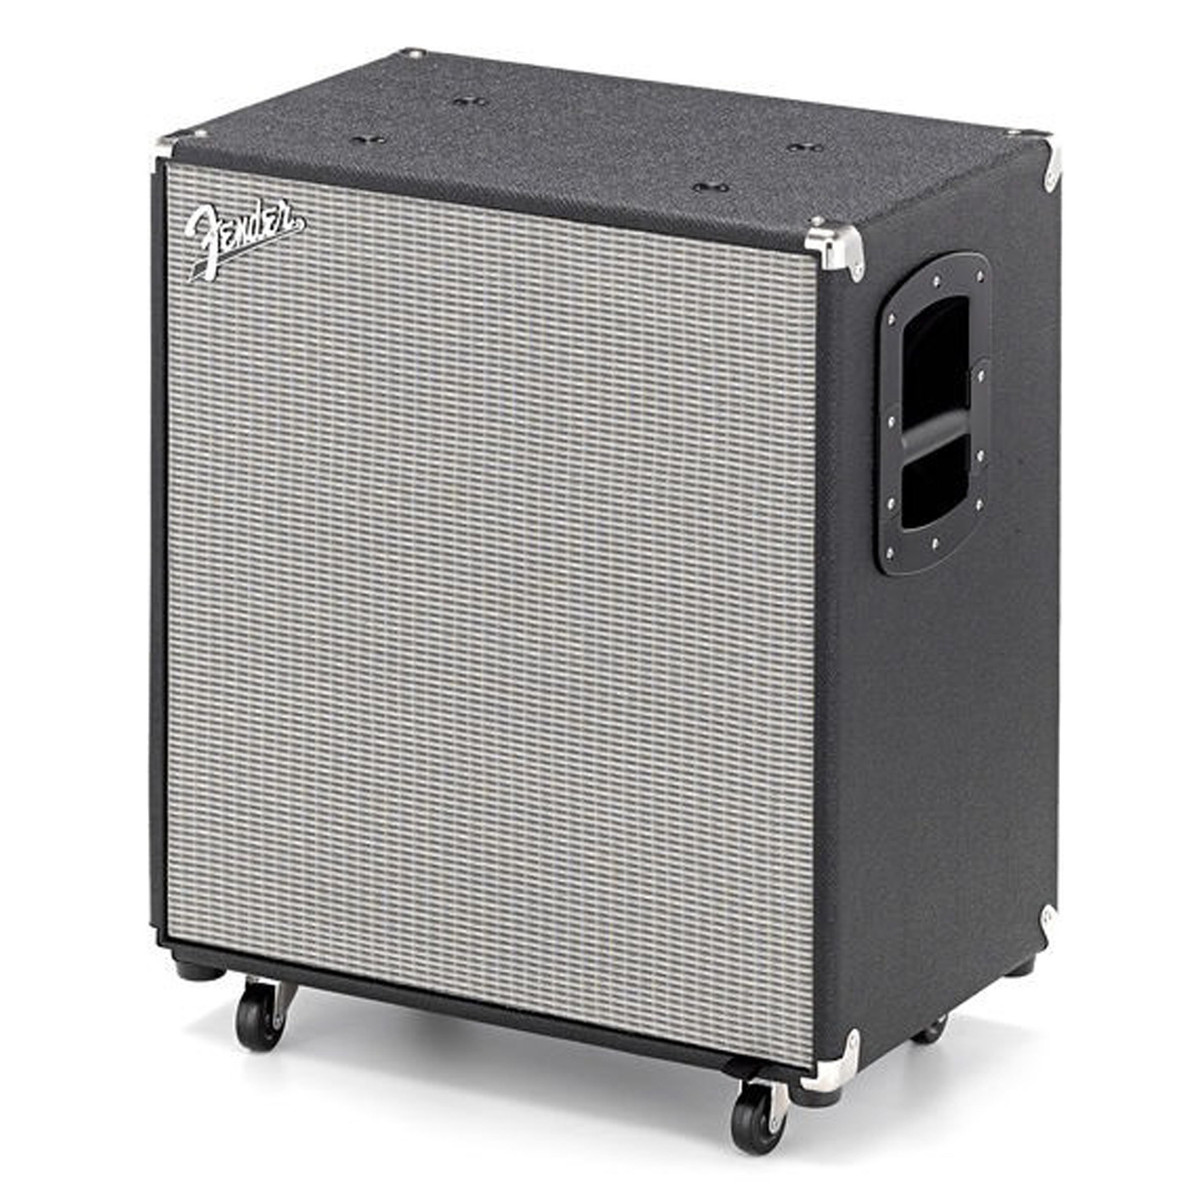 Fender rumble 410 bass cabinet black silver at for Black and silver cabinet